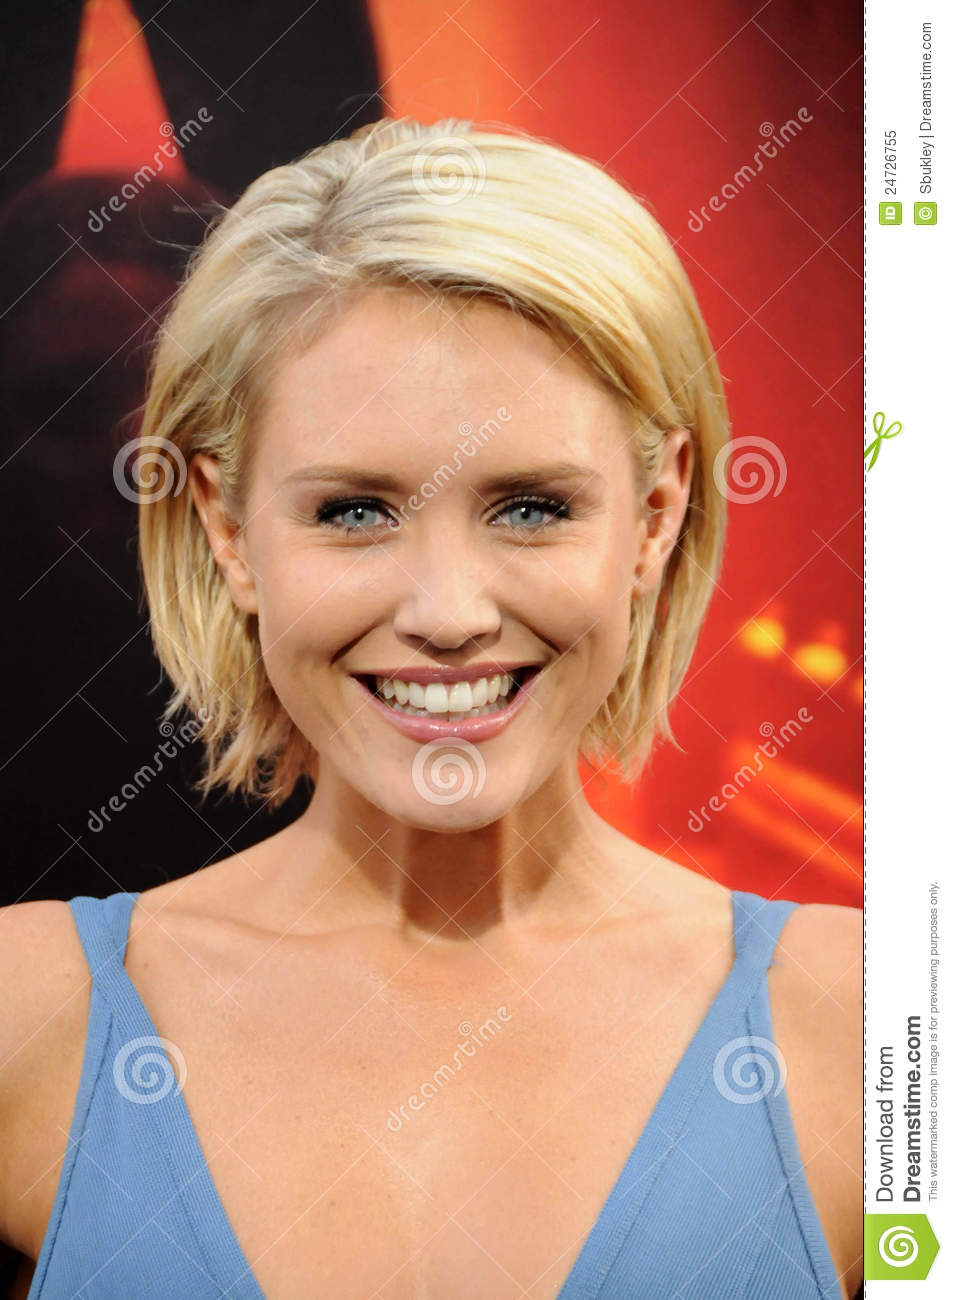 Stock Image Dreamstime Nicky Whelan Editorial Image Image 24726755